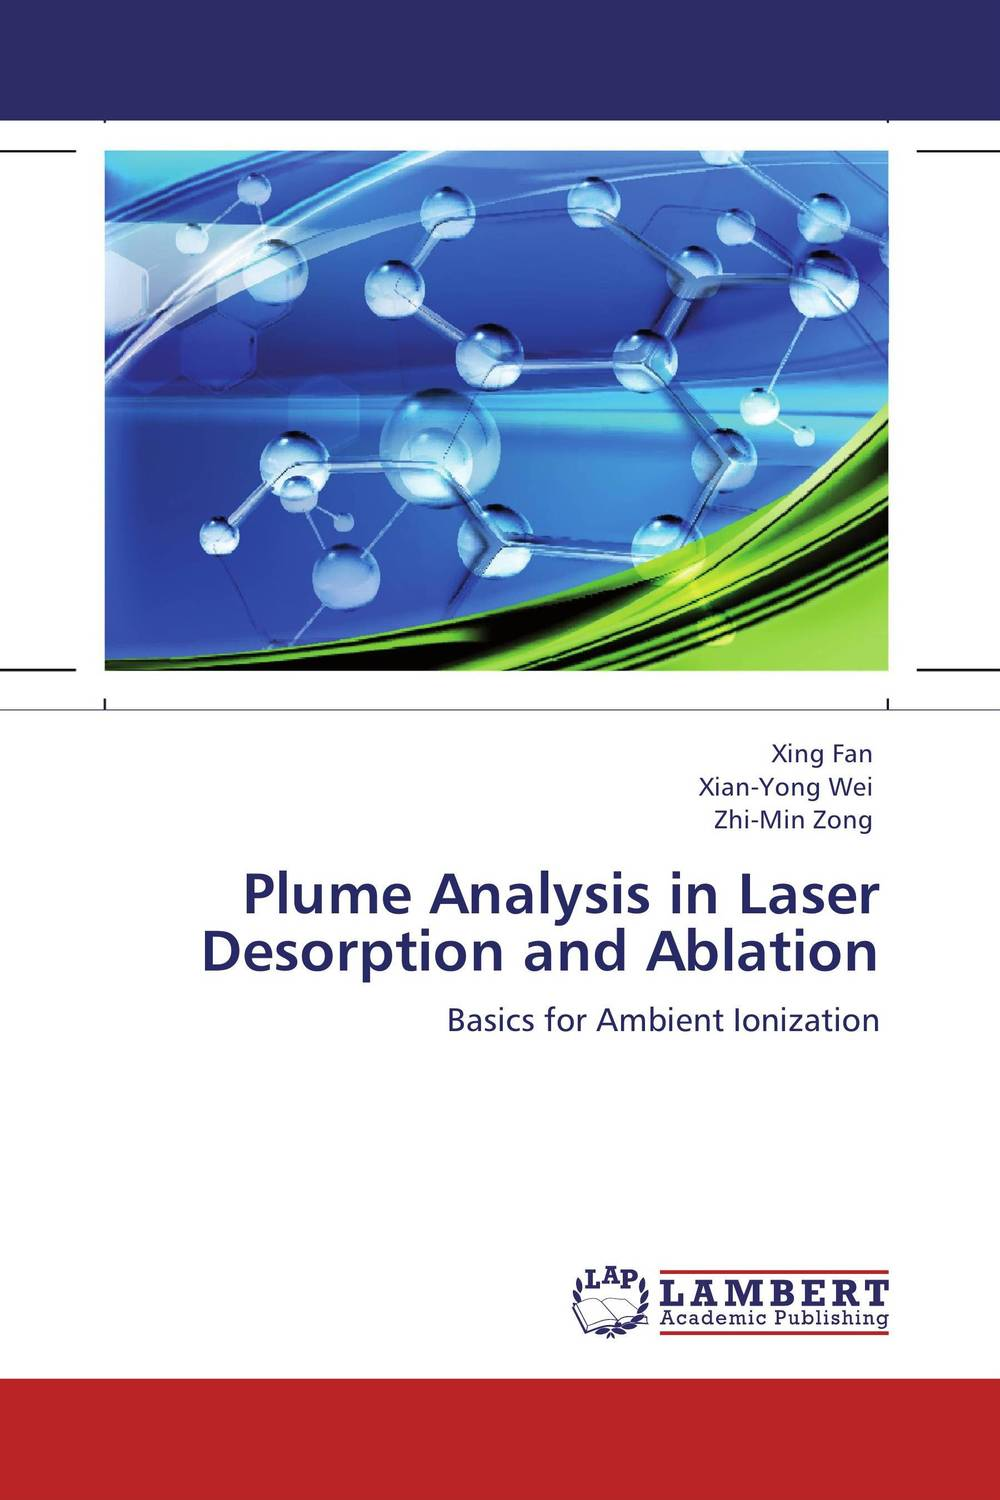 Plume Analysis in Laser Desorption and Ablation electron ionization relevance to planetary atmospheres